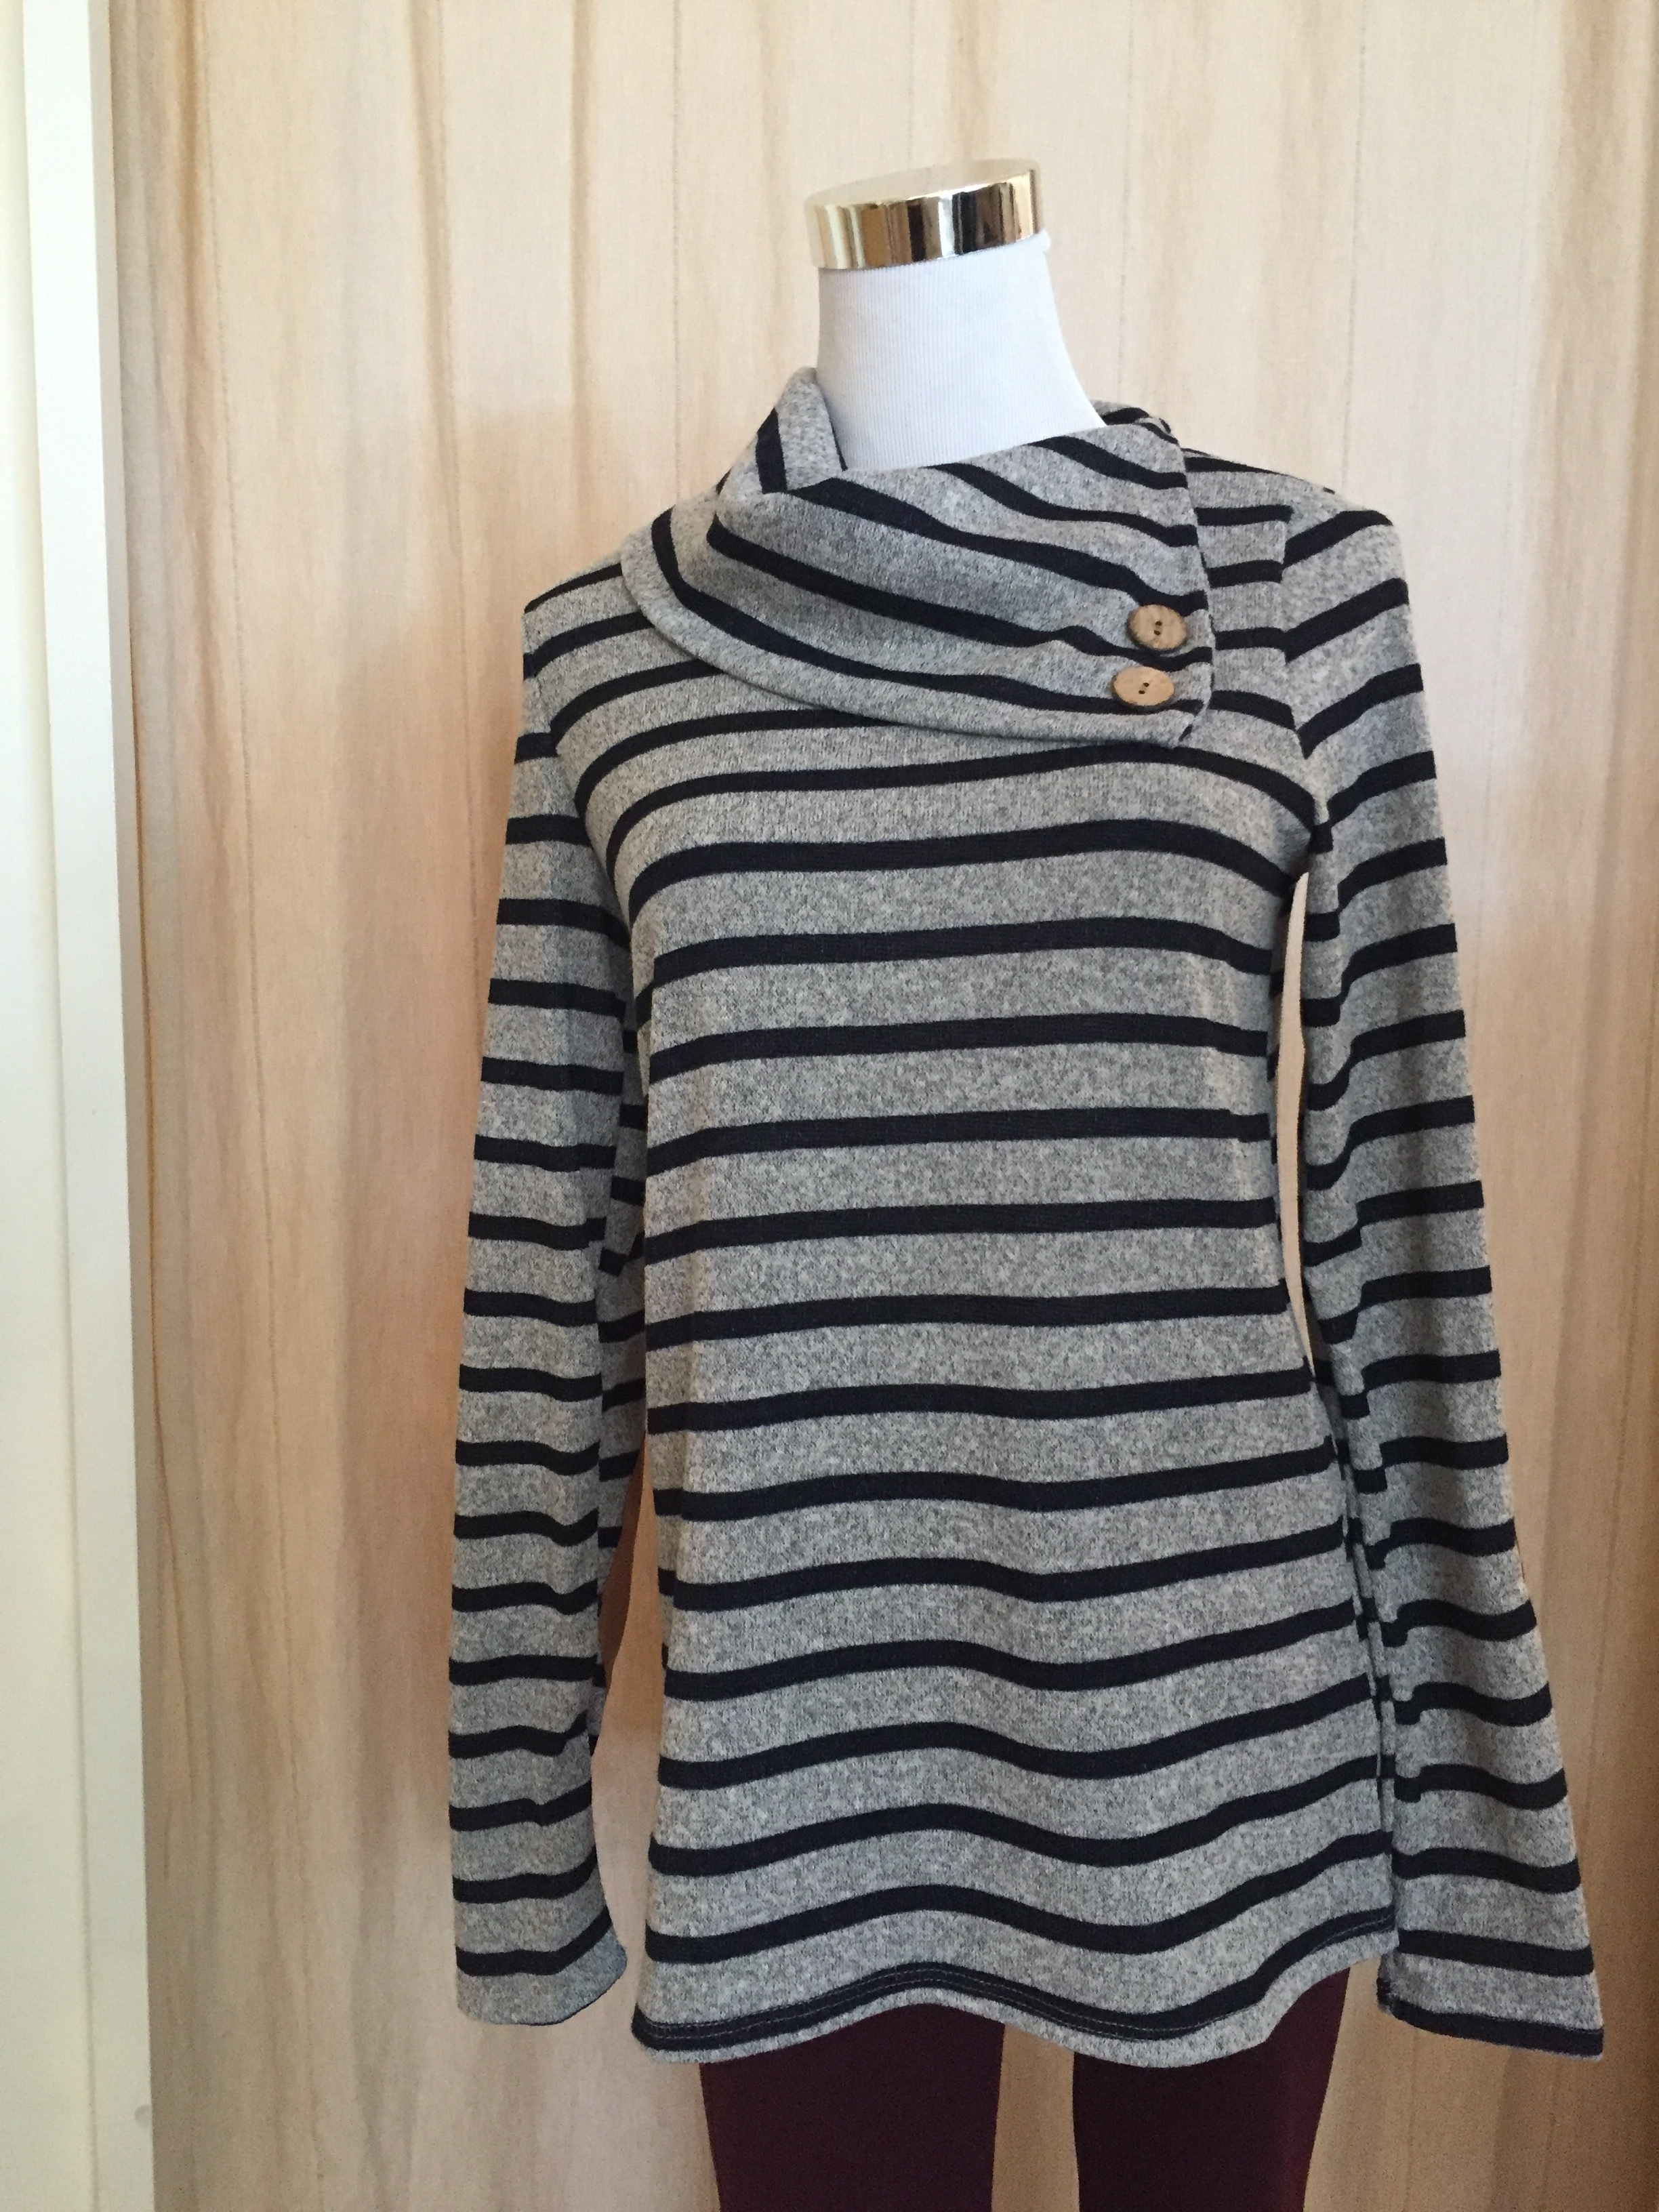 Button Detail Striped Sweater ($35)